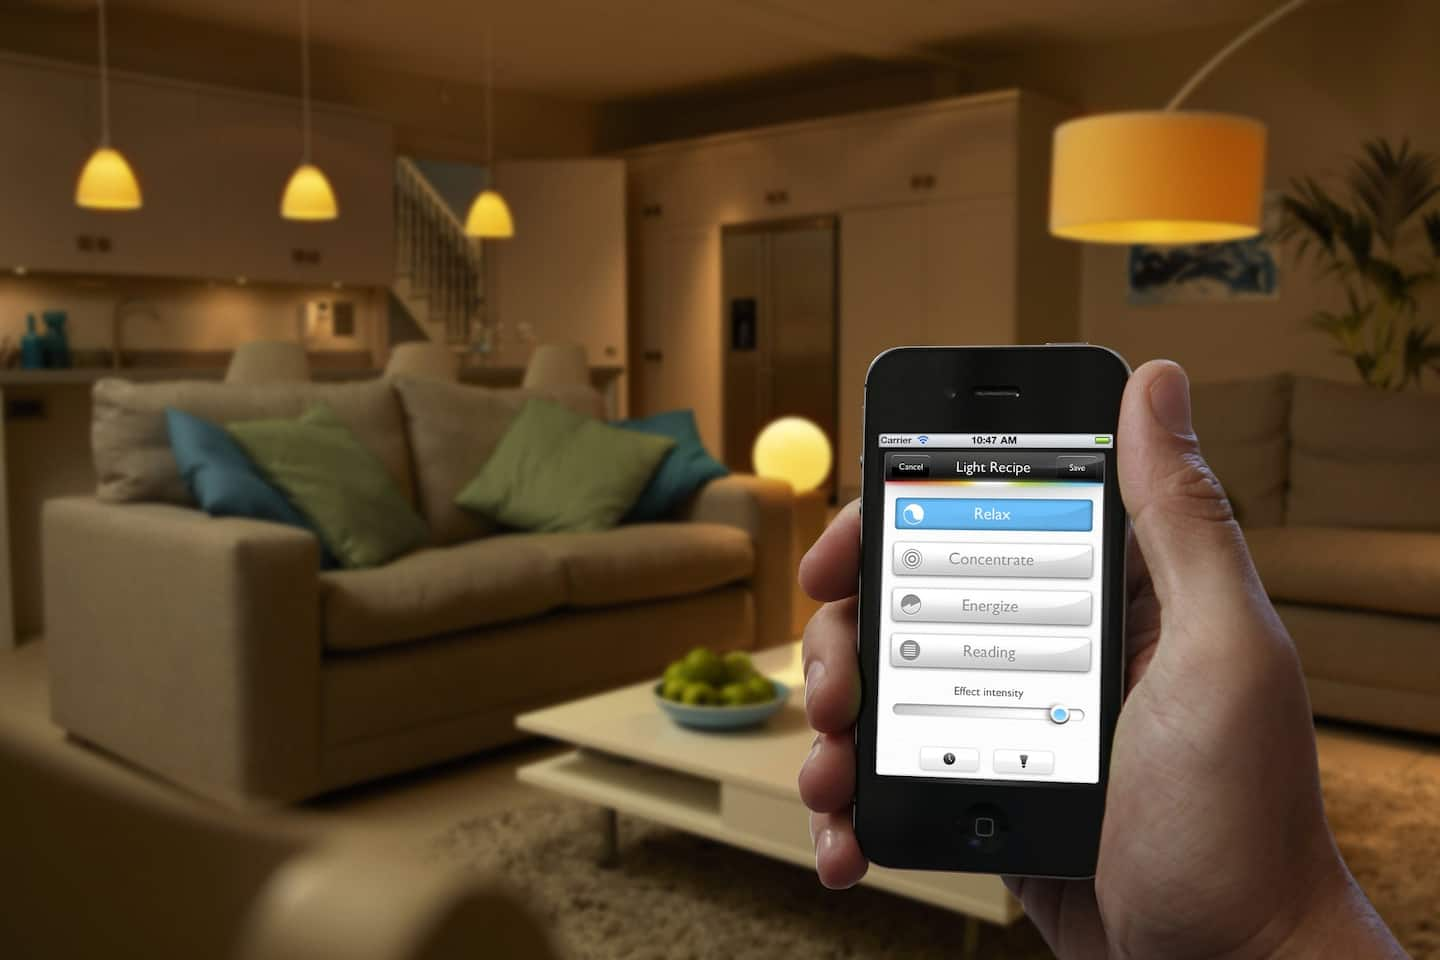 A hand holding a smartphone that homeowners can control their interior lights from using the app on the screen.